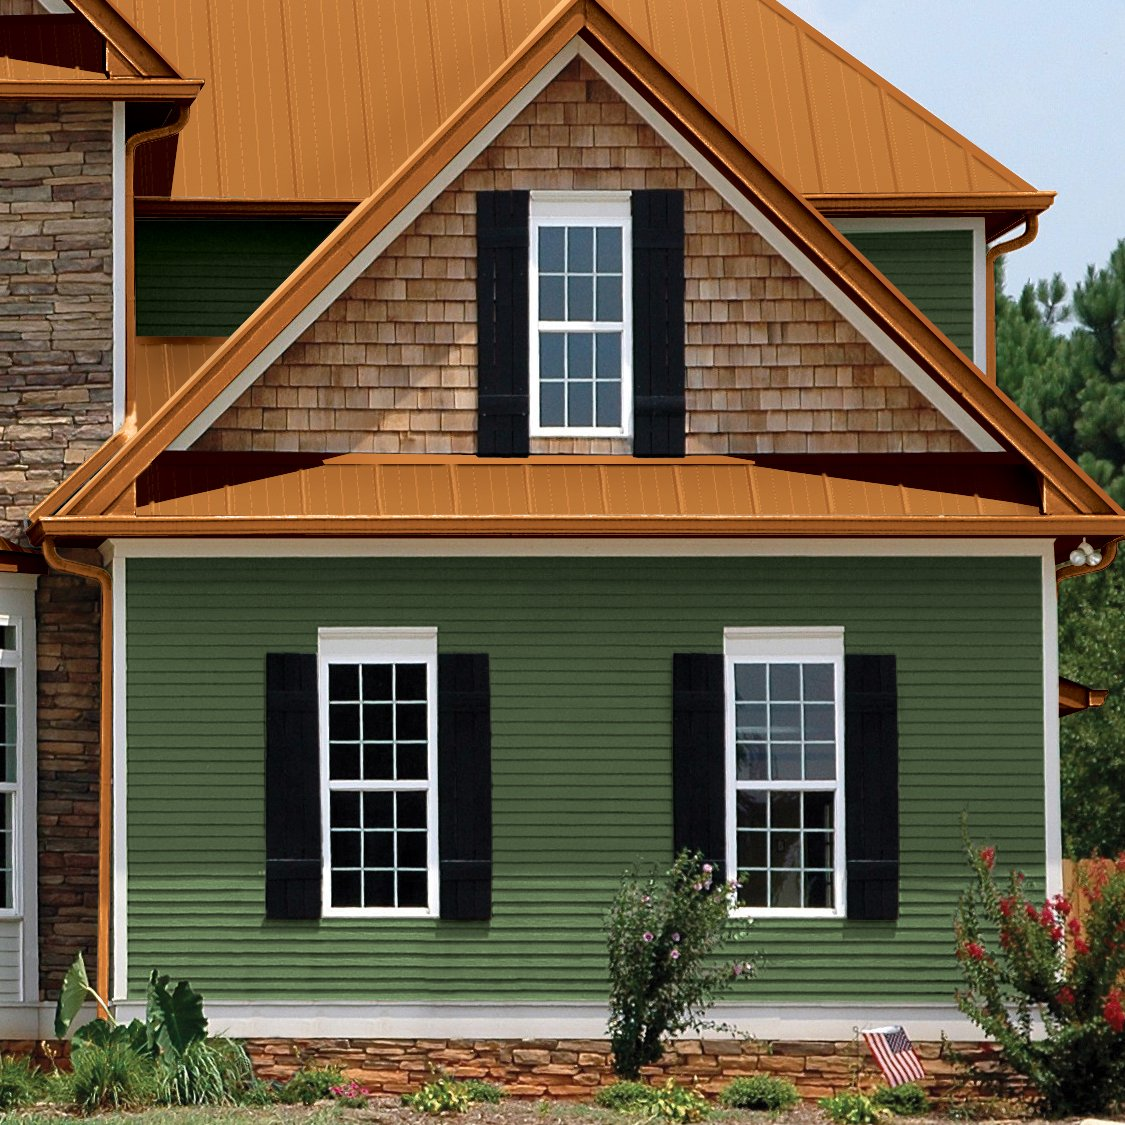 Exterior Siding Design Entrancing Virginia Roofing & Siding Company  Siding Design Decoration